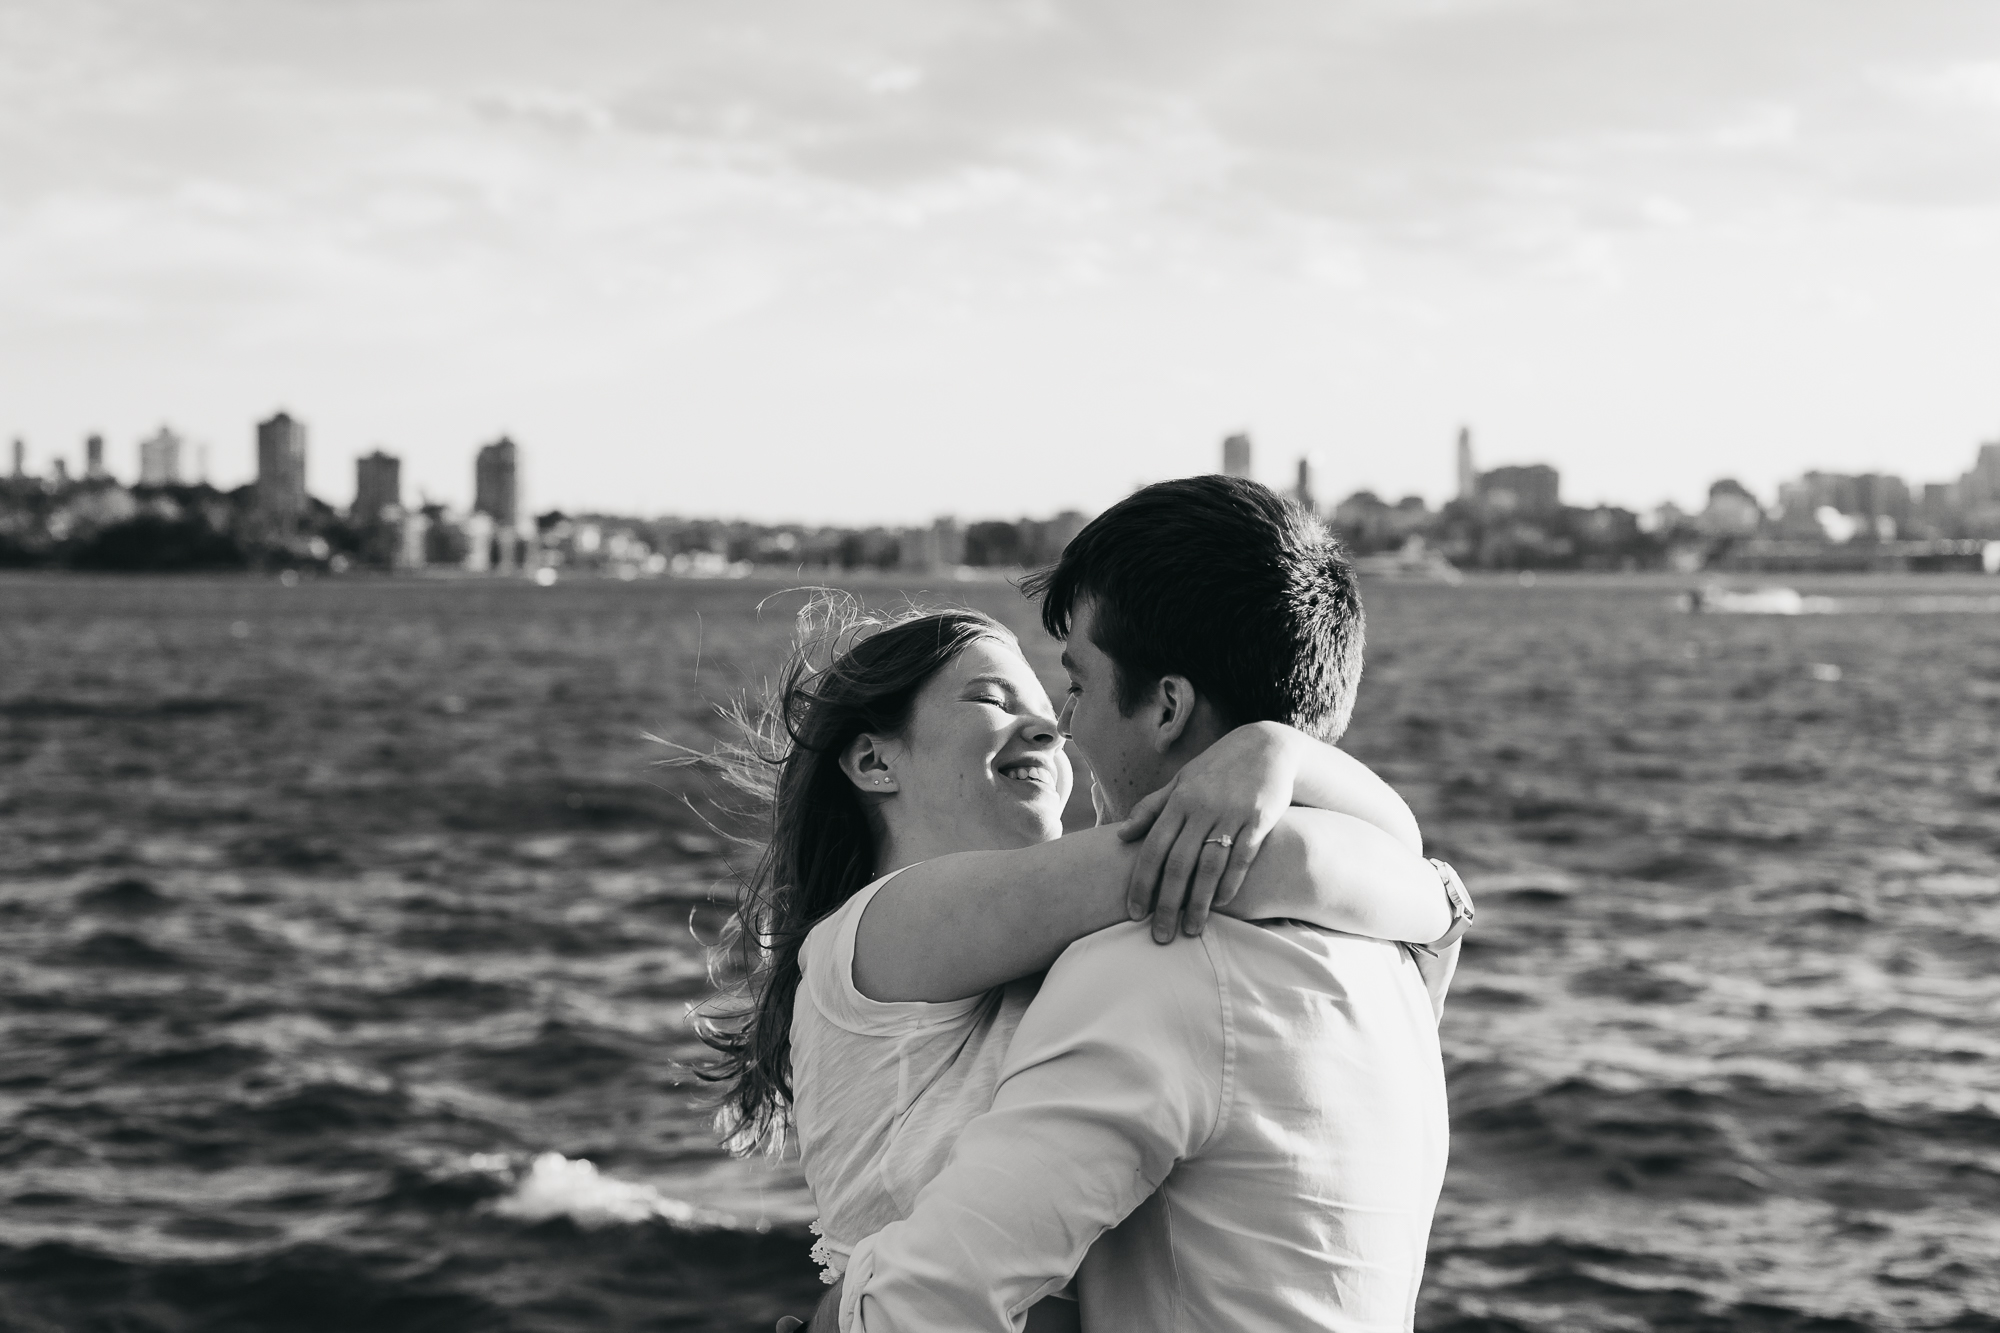 Amanzi and Steven_Engagement_Sydney_Holly Medway Photography-19.JPG